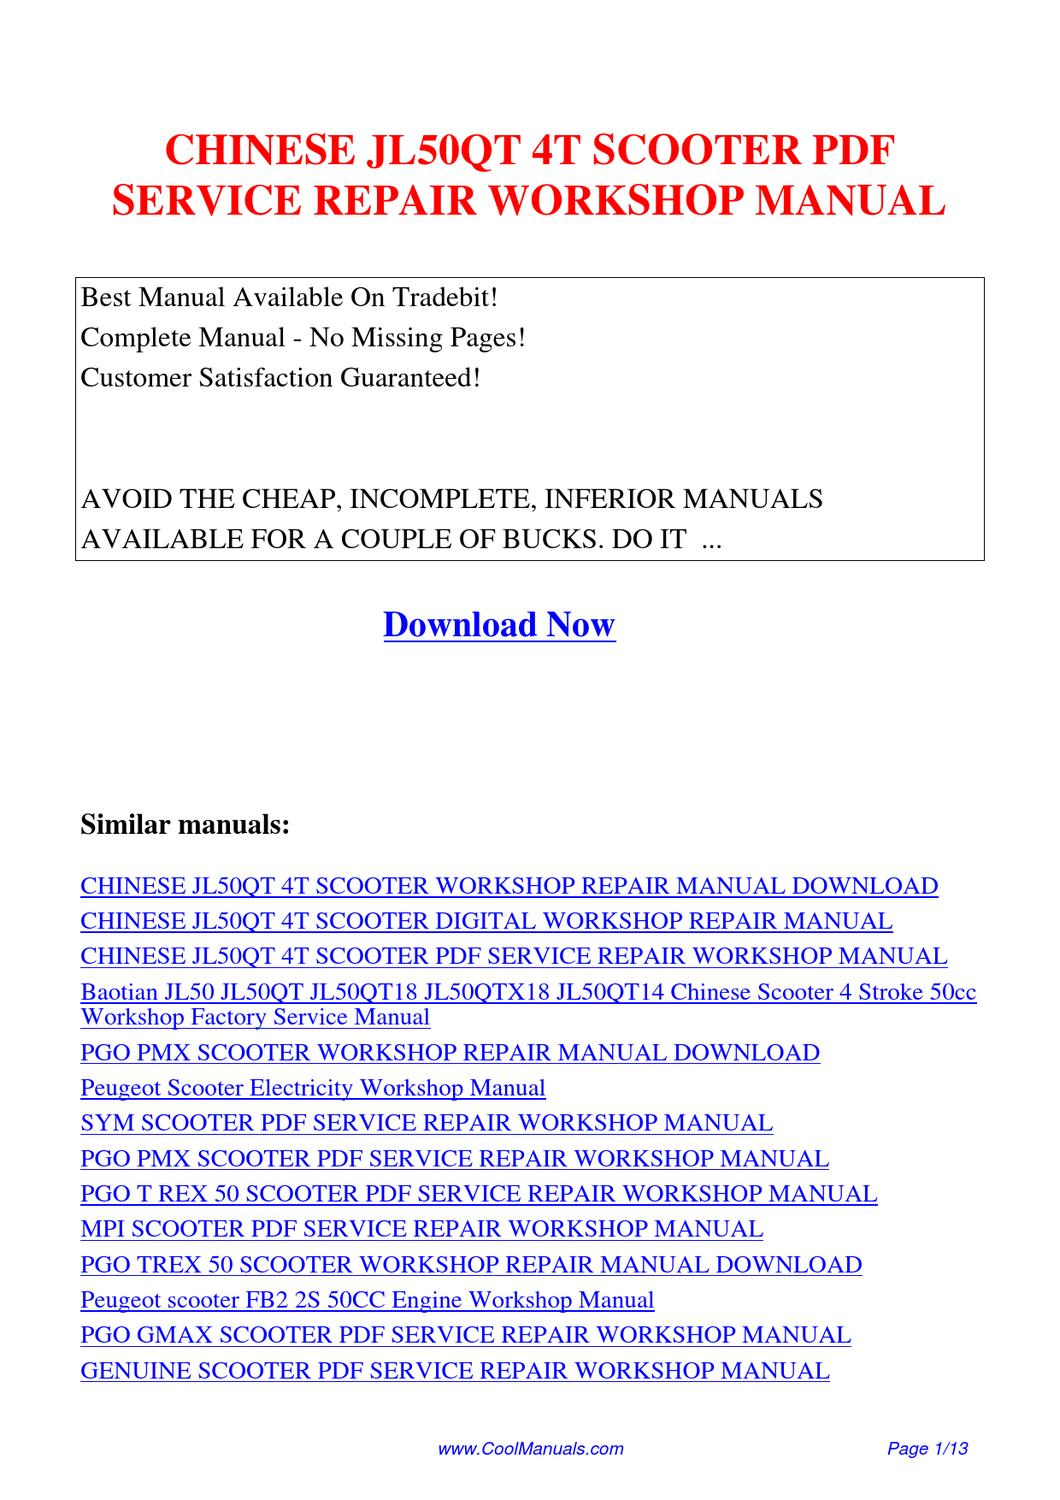 CHINESE_JL50QT_4T_SCOOTER_SERVICE_REPAIR_WORKSHOP_MANUAL by Lan Huang -  issuu